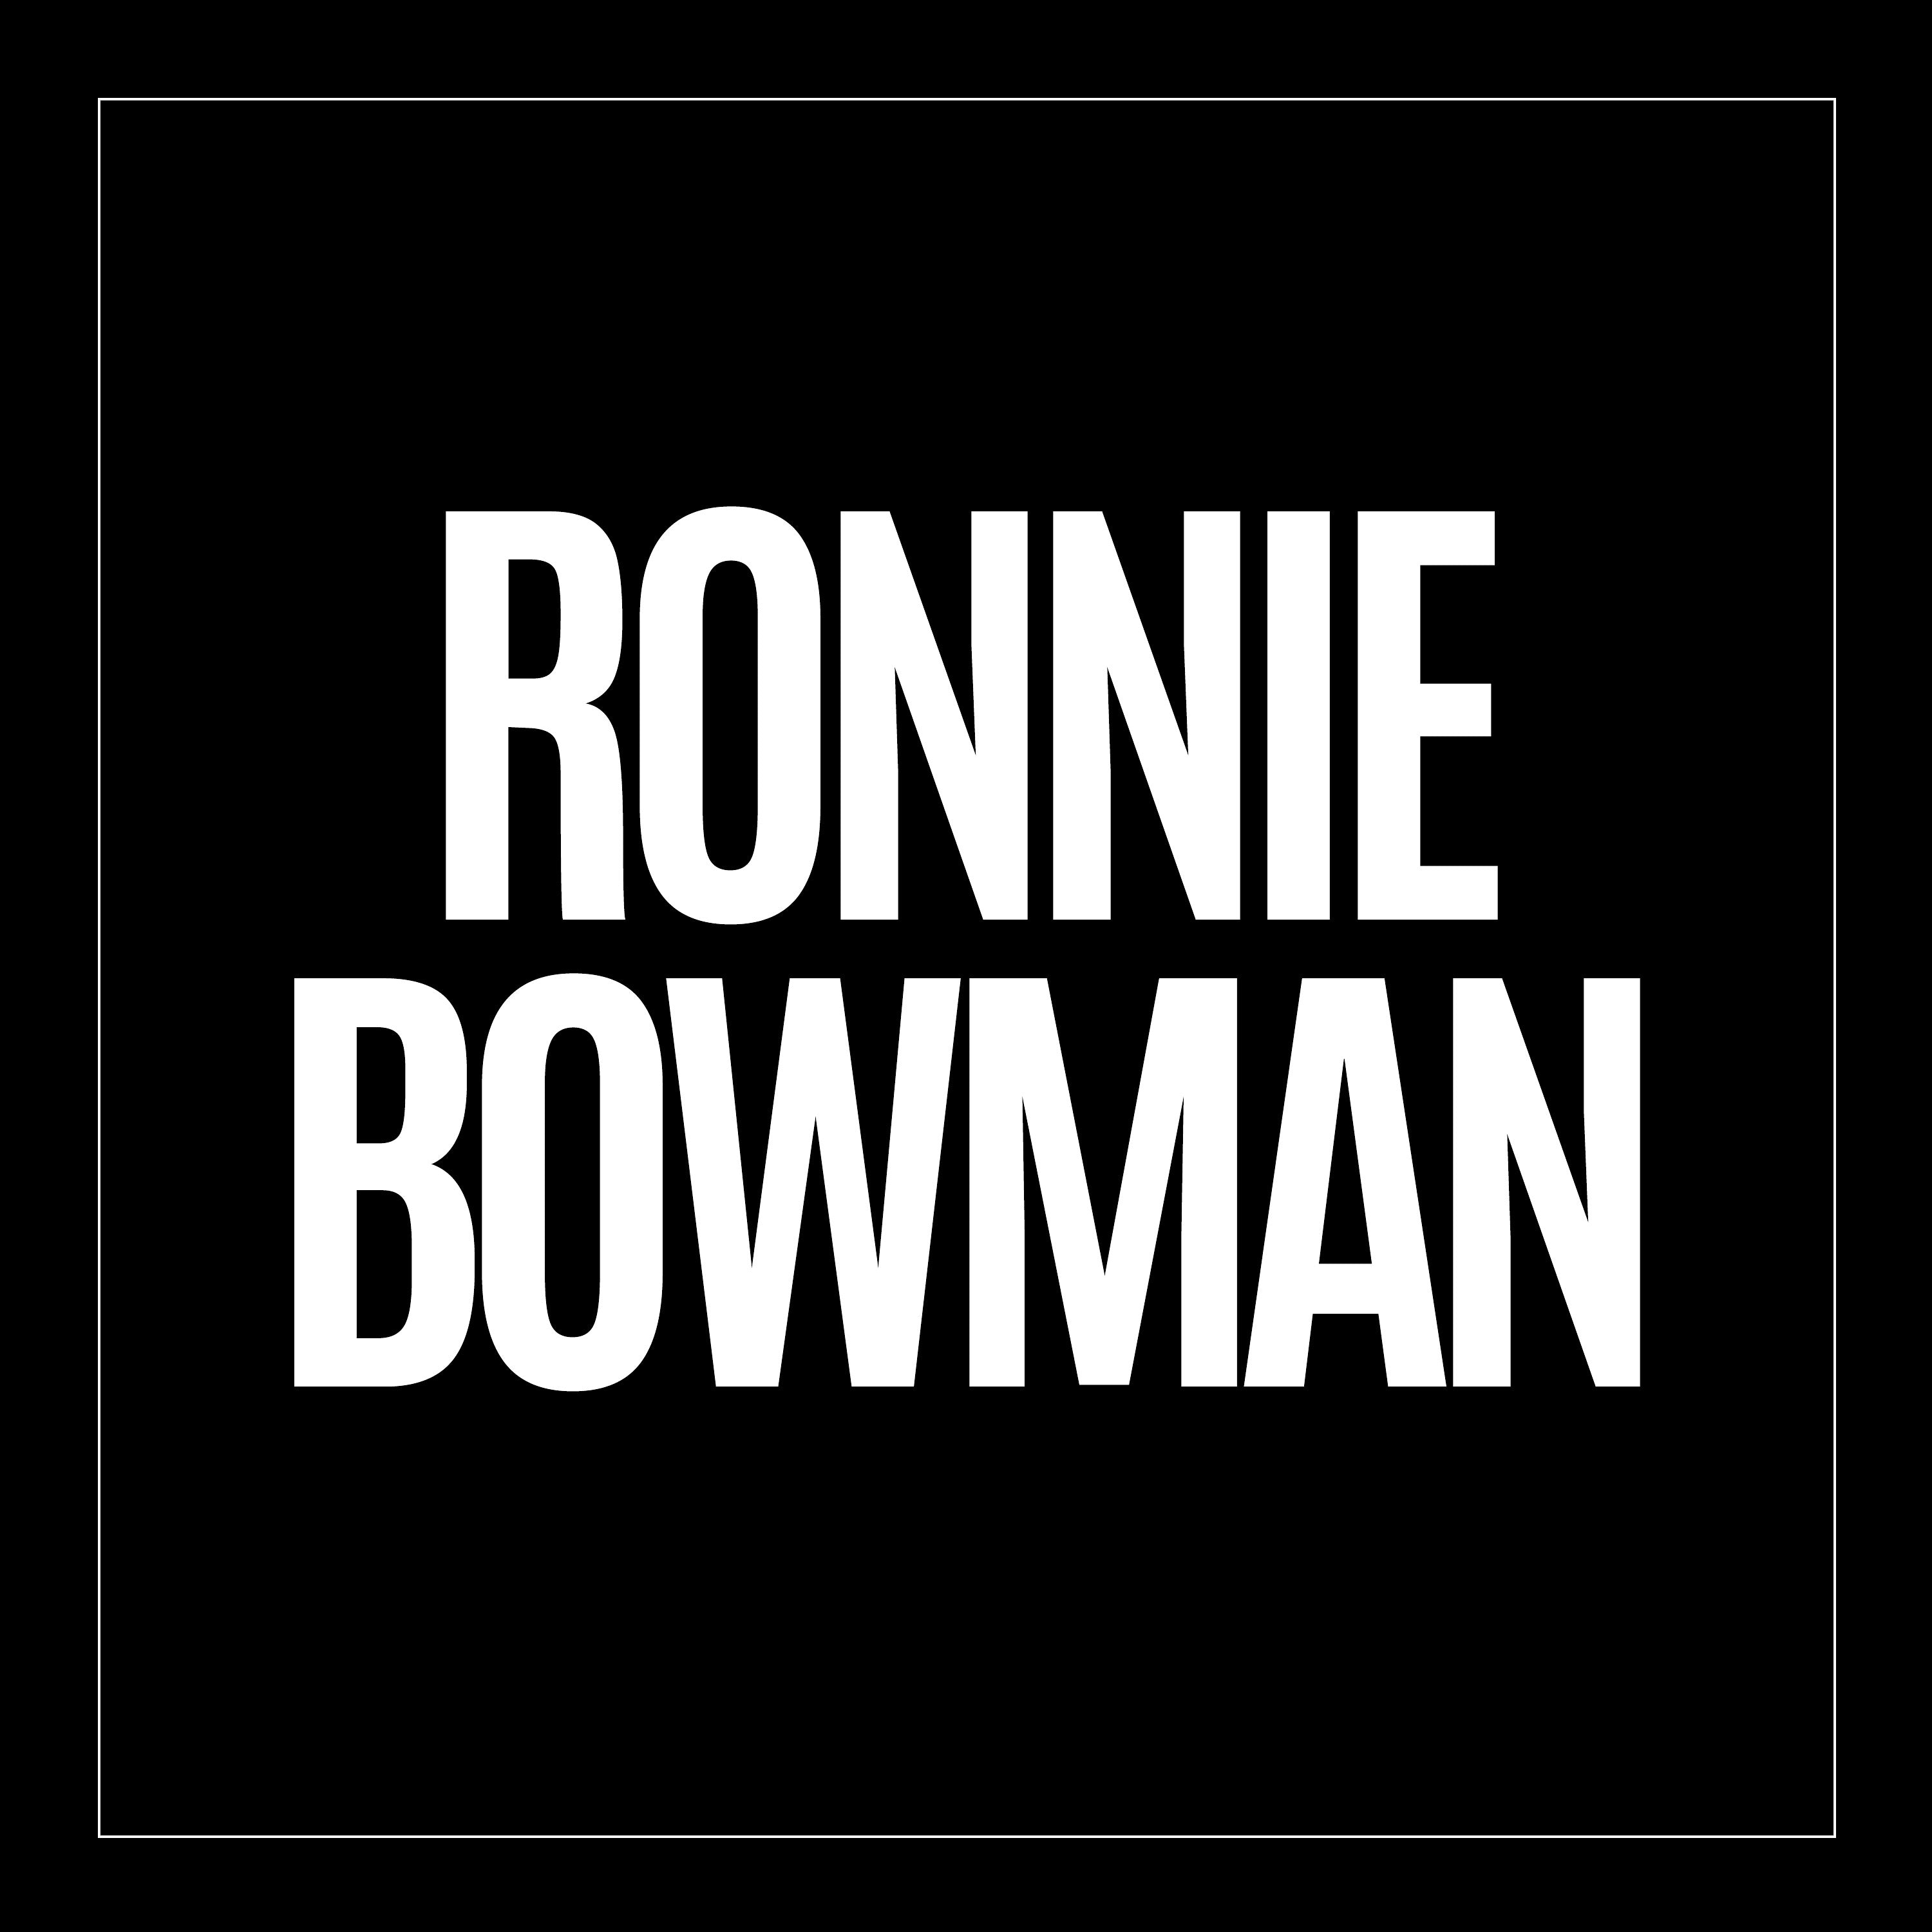 RONNIE BOWMAN EMG-10225-CD